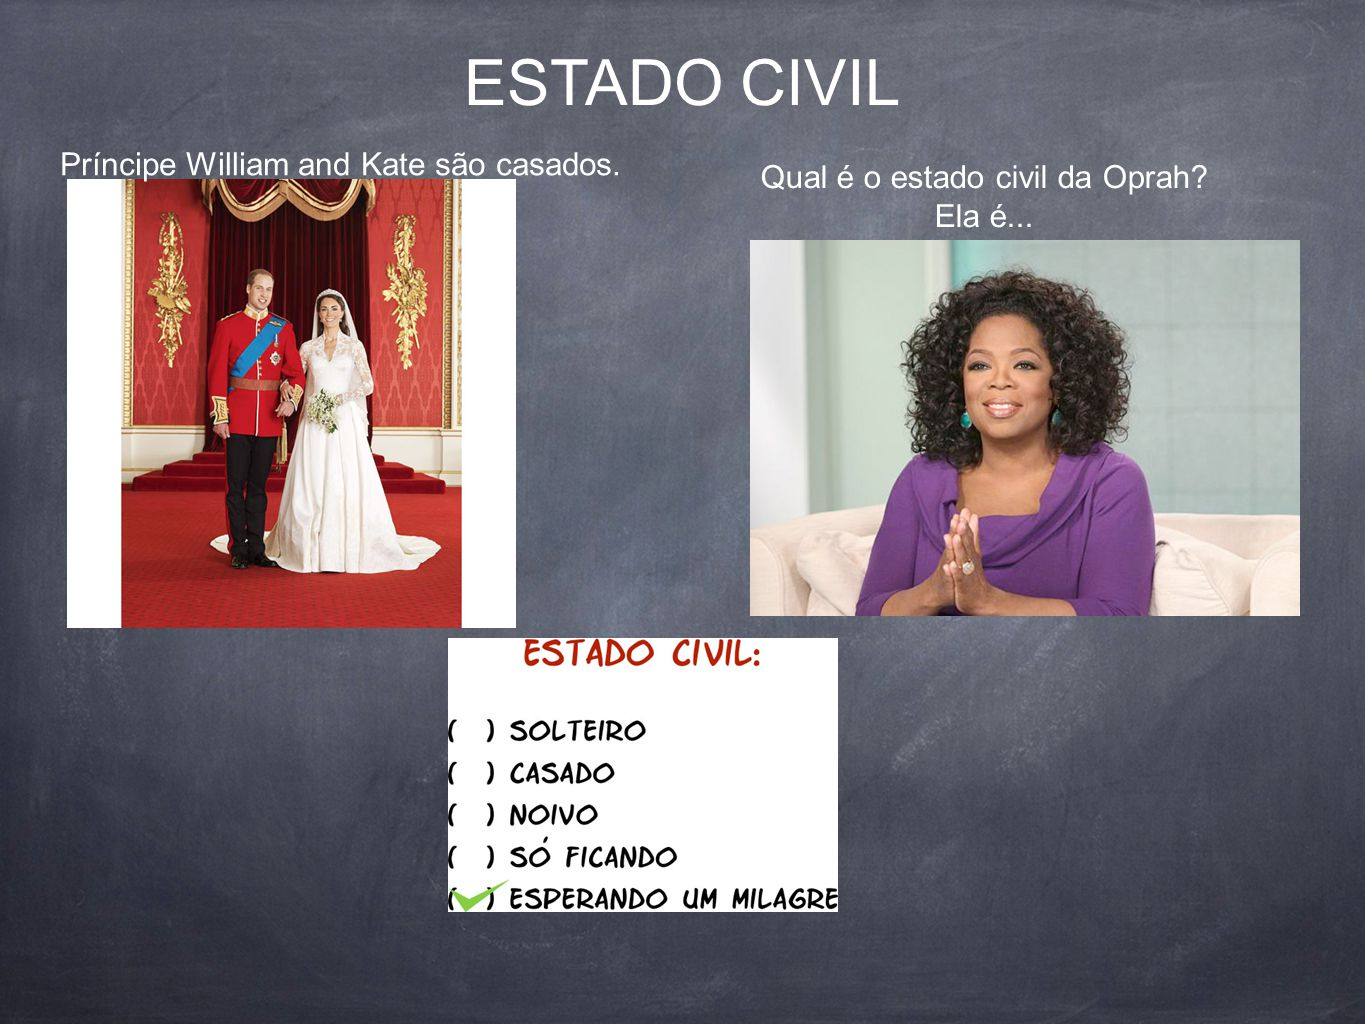 Qual é o estado civil da Oprah